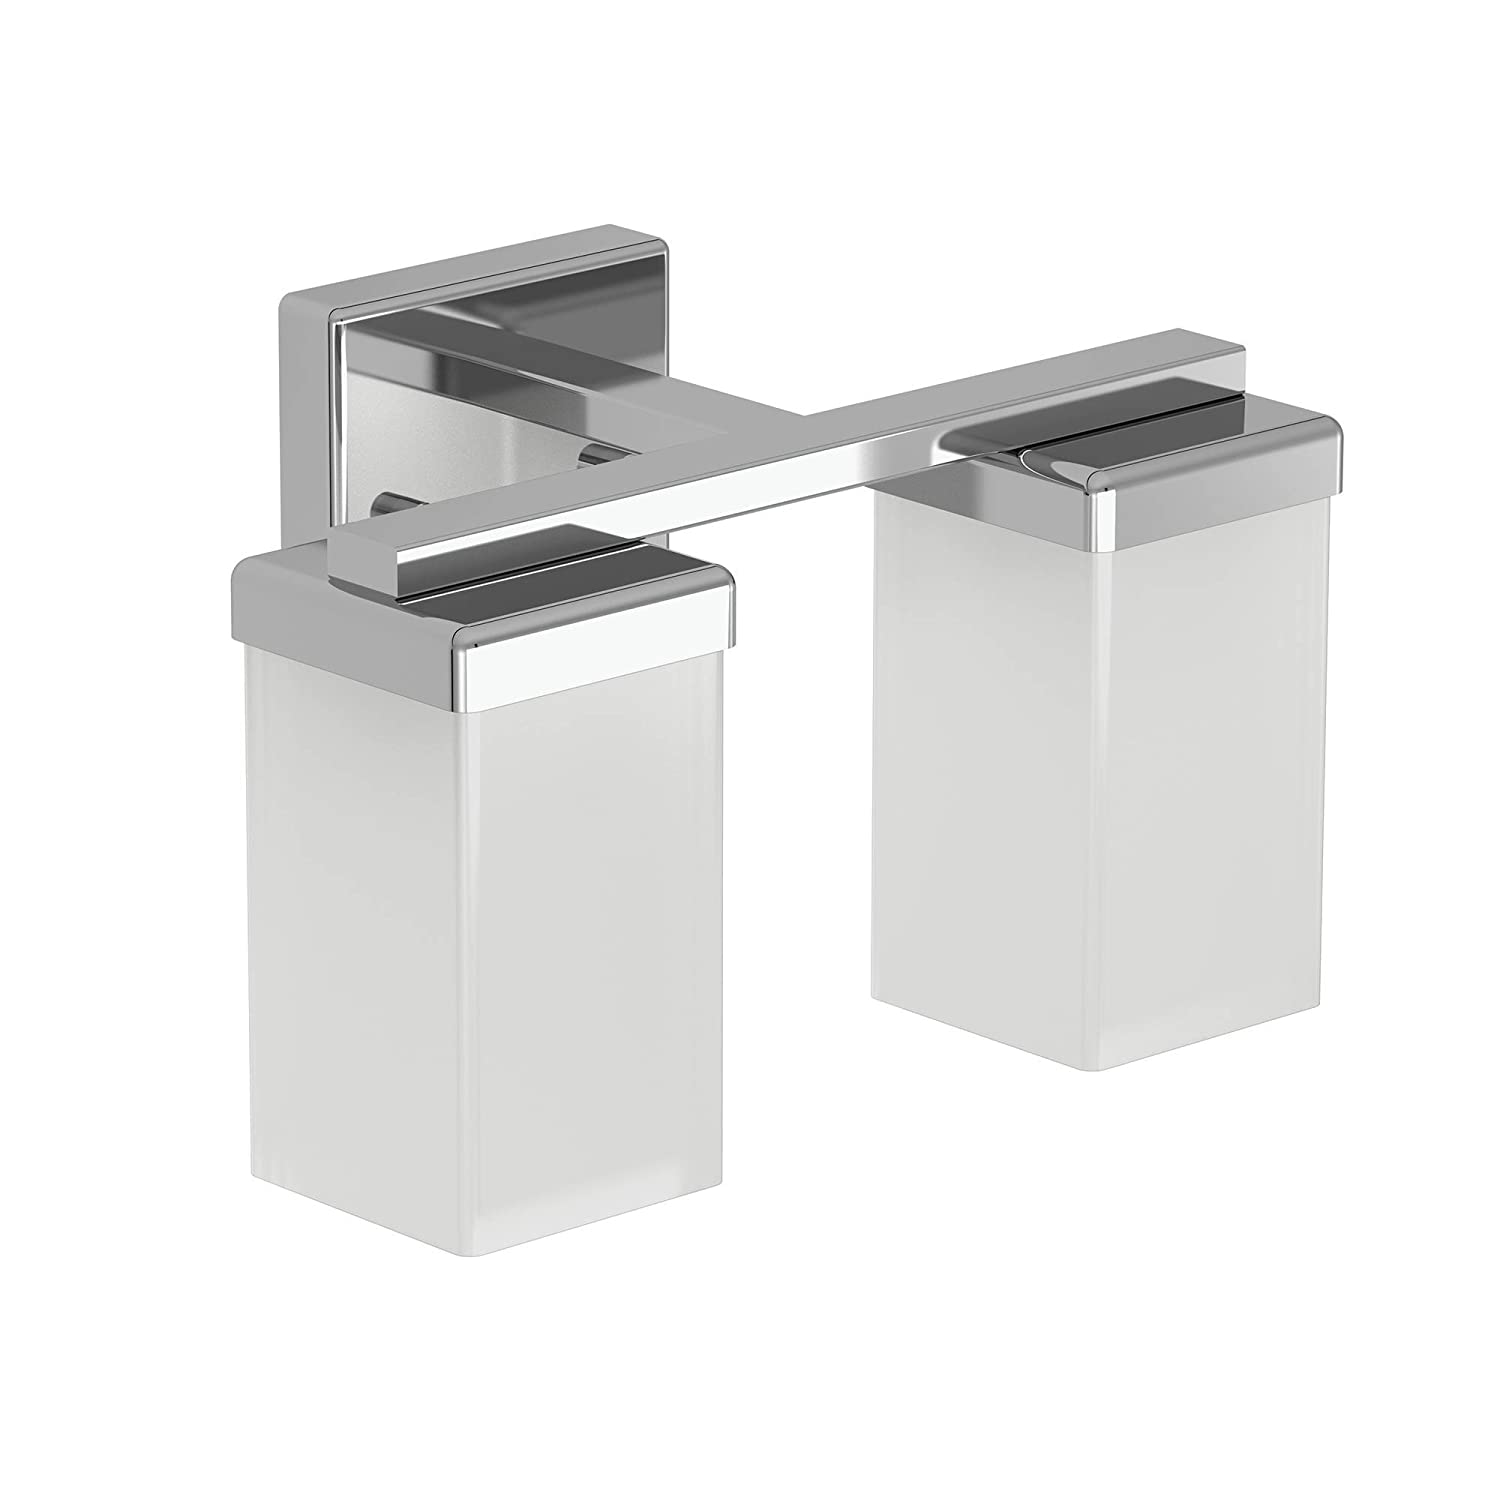 Moen YB8862CH 2-Light Dual-Mount Bath Bathroom Vanity Fixture with Frosted Glass, Chrome